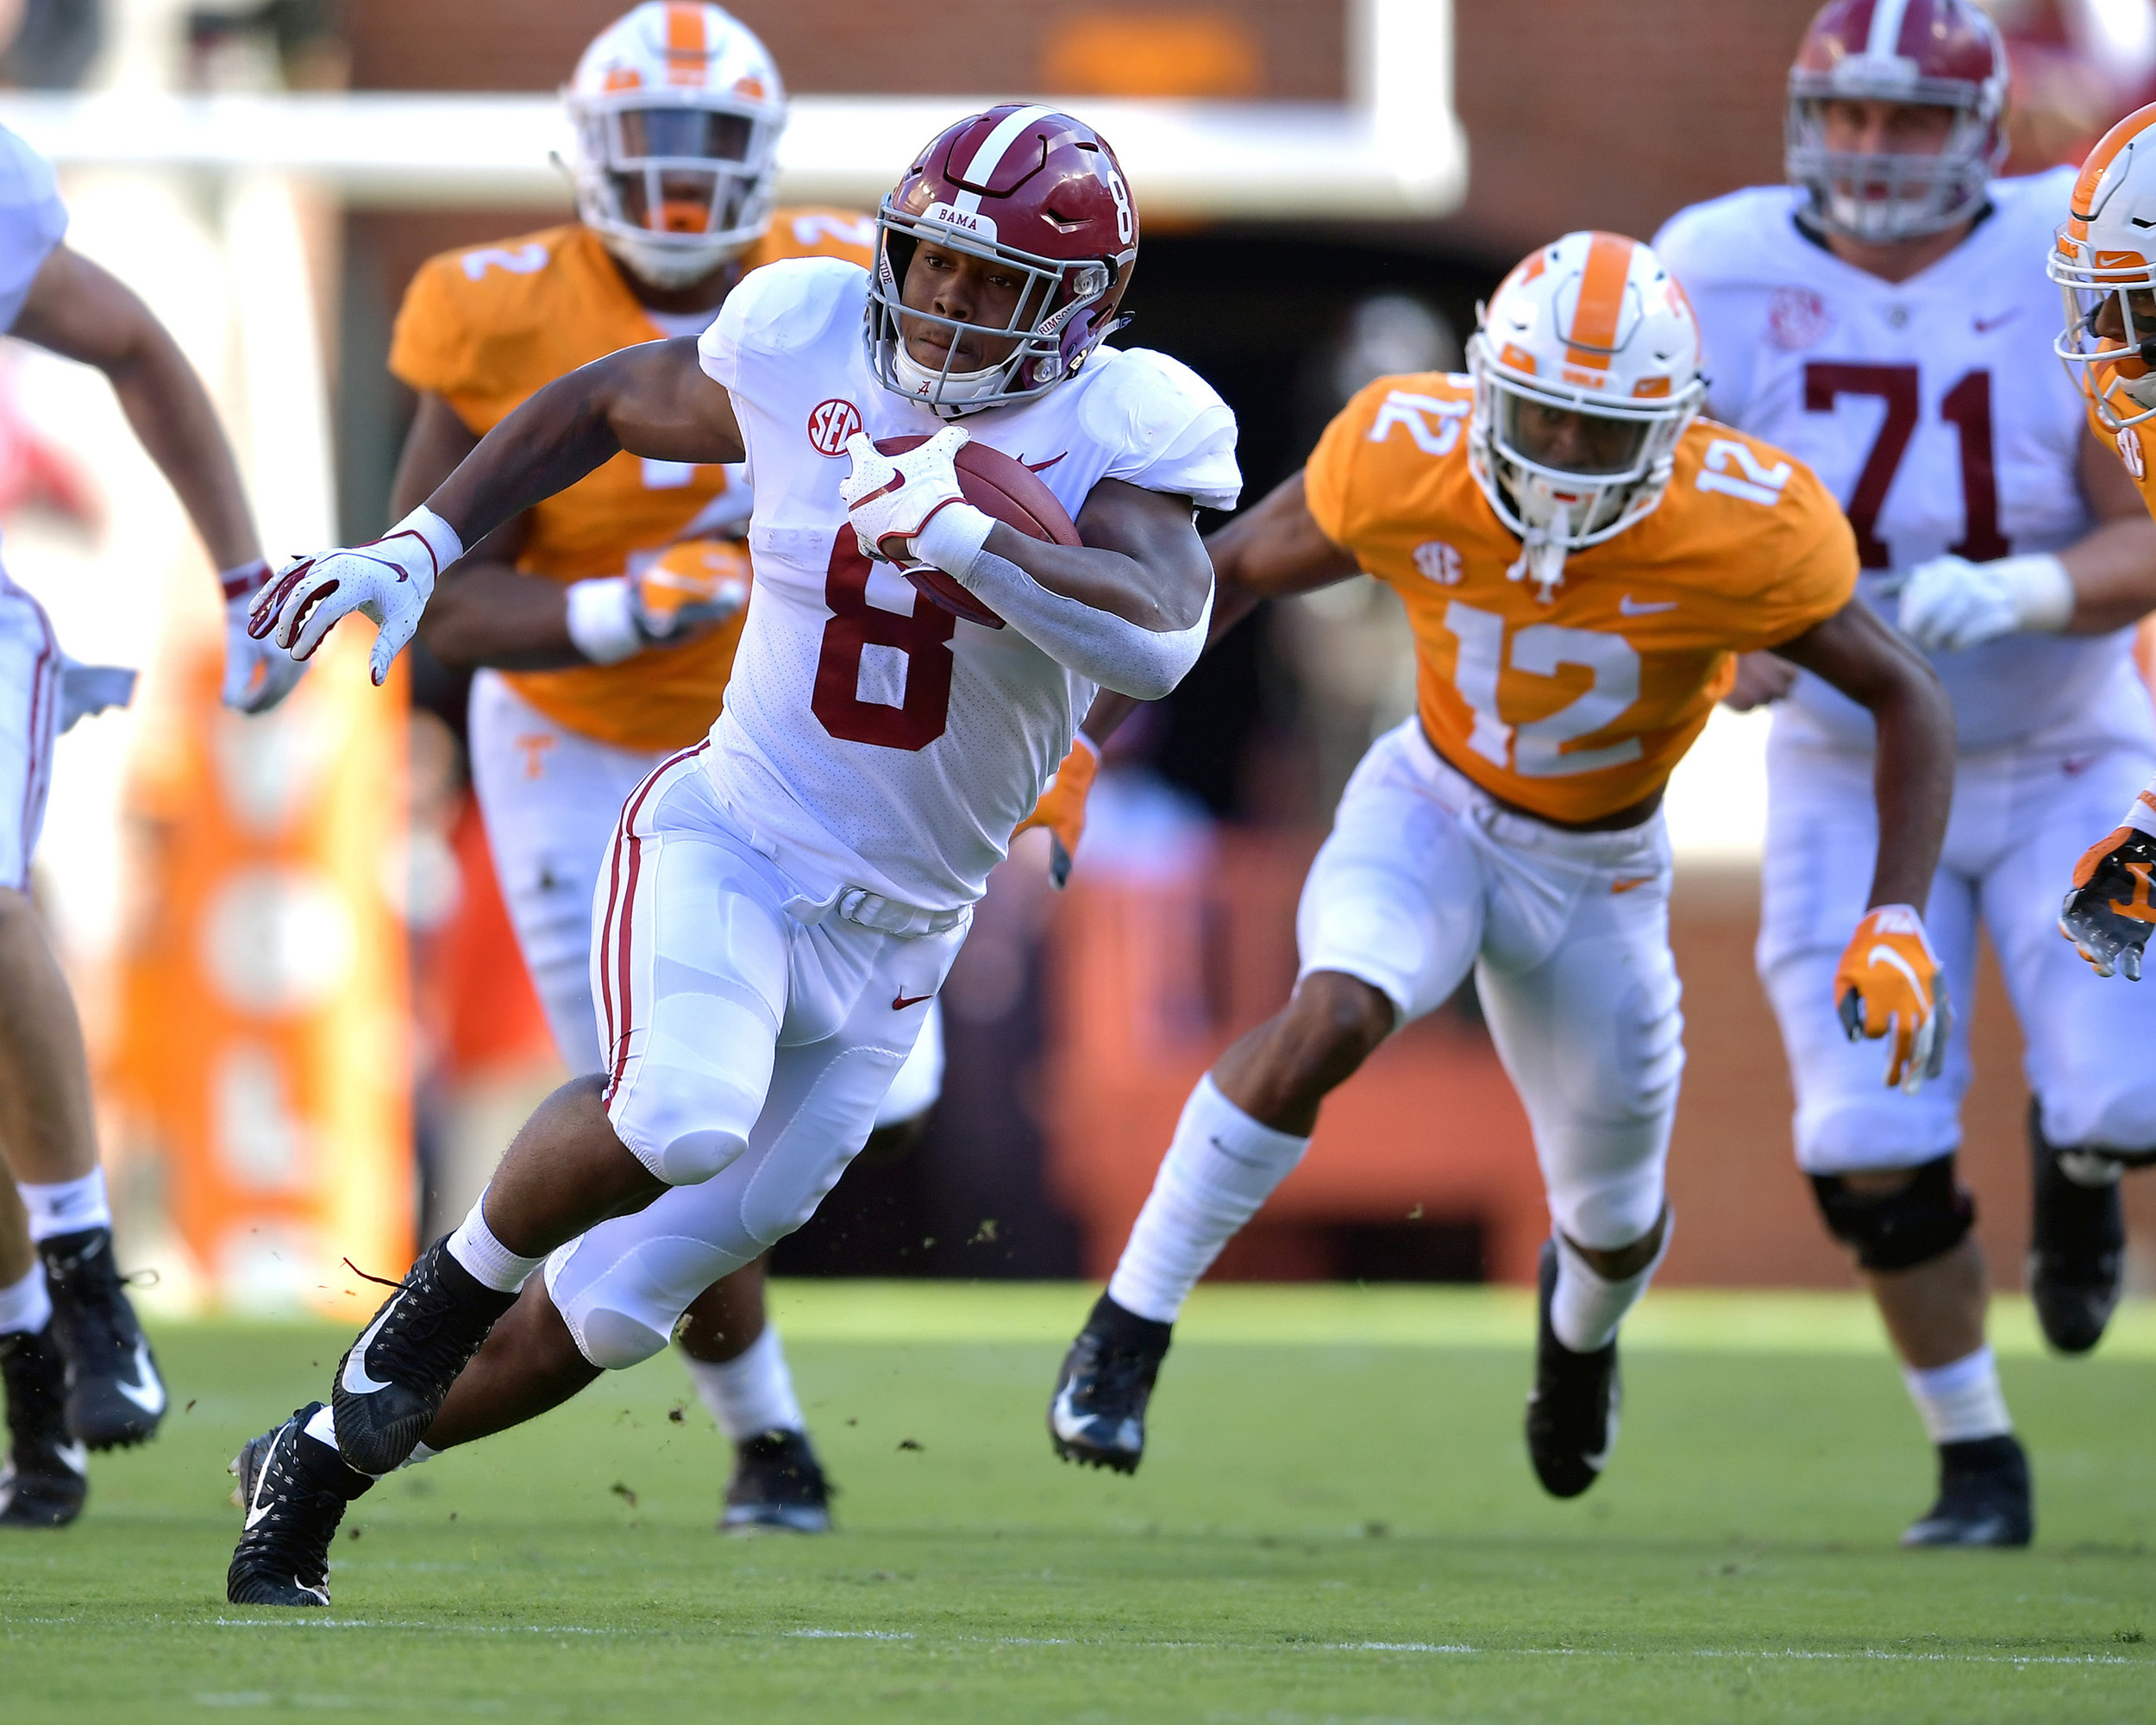 Alabama Crimson Tide running back Josh Jacobs (8) with a carry in the first half of the Alabama at Tennessee NCAA football game on Saturday, Oct. 20, 2018, at Neyland Stadium in Knoxville. Tenn. Alabama wins 58-21. (Photo by Lee Walls)